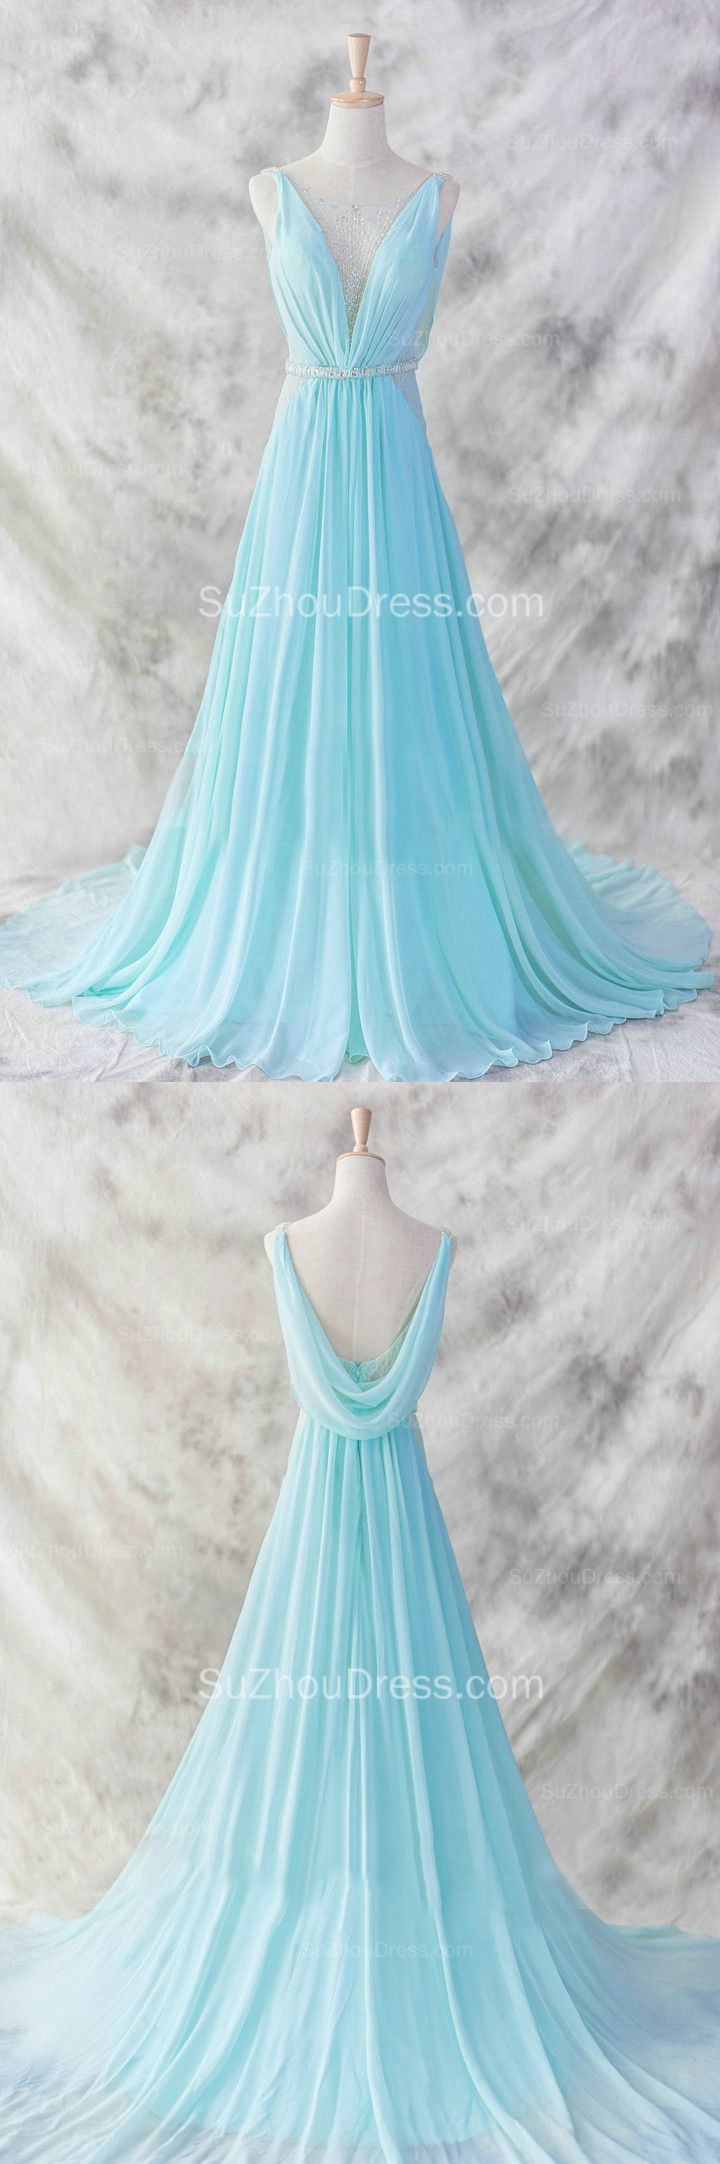 2015 Evening Dresses Straps Sleeveless Blue A Line Sweep Train Sequins Sash Zipper Cheap Prom Gowns prom dress #promdress .http://www.newdress2015.com/prom-dresses-us63_1/p3